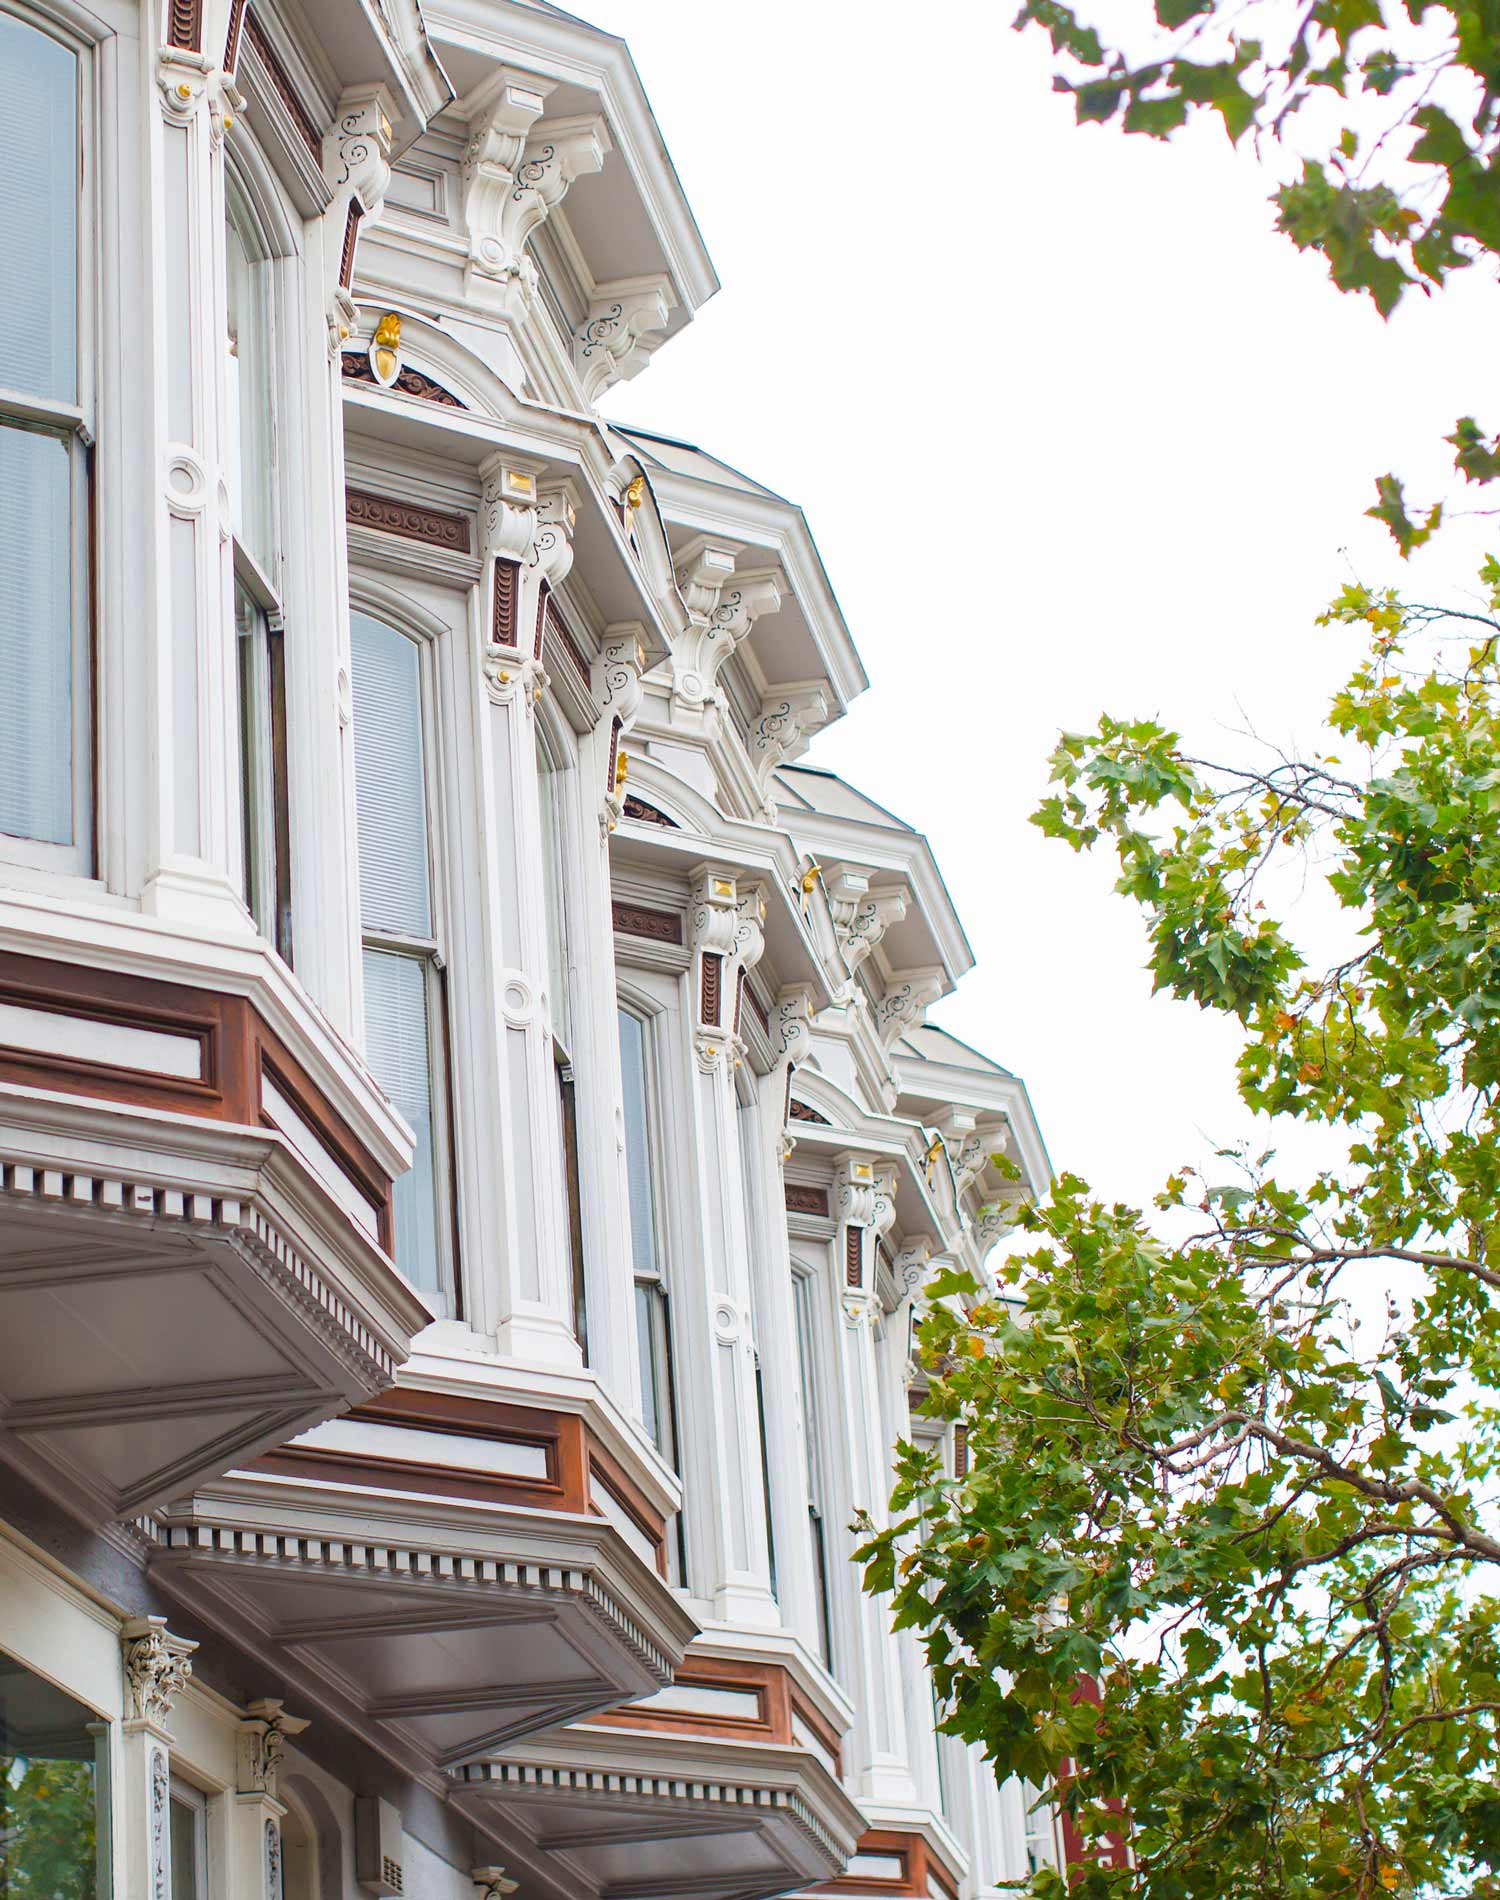 Getting here - Conveniently located at 9th and Washington, the heart of Old Oakland encompasses the area between Broadway and Washington Streets and 8th to 10th Streets. Lined with exciting retail and food options, the neighboring streets also offer an exciting variety welcoming venues. Come explore!DIRECTIONS »